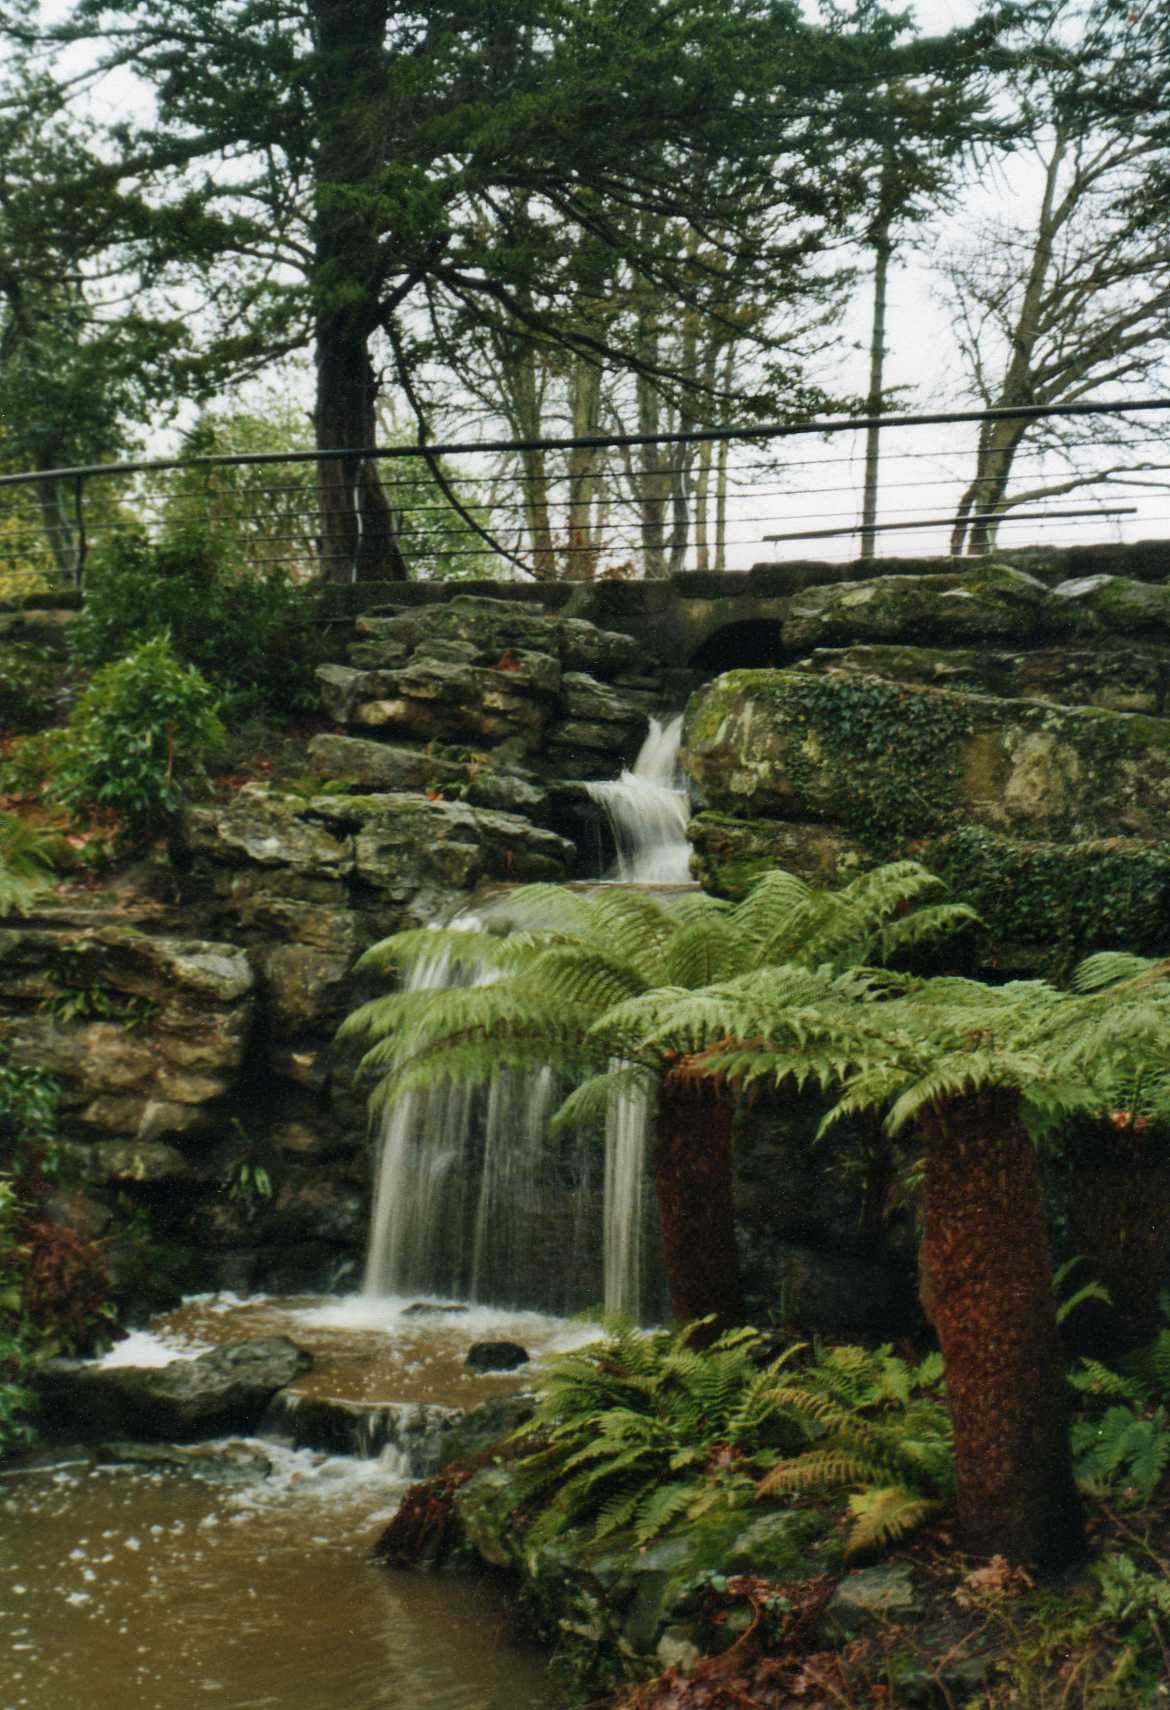 The rockery and waterfall at Dunorlan Park, Tunbridge Wells